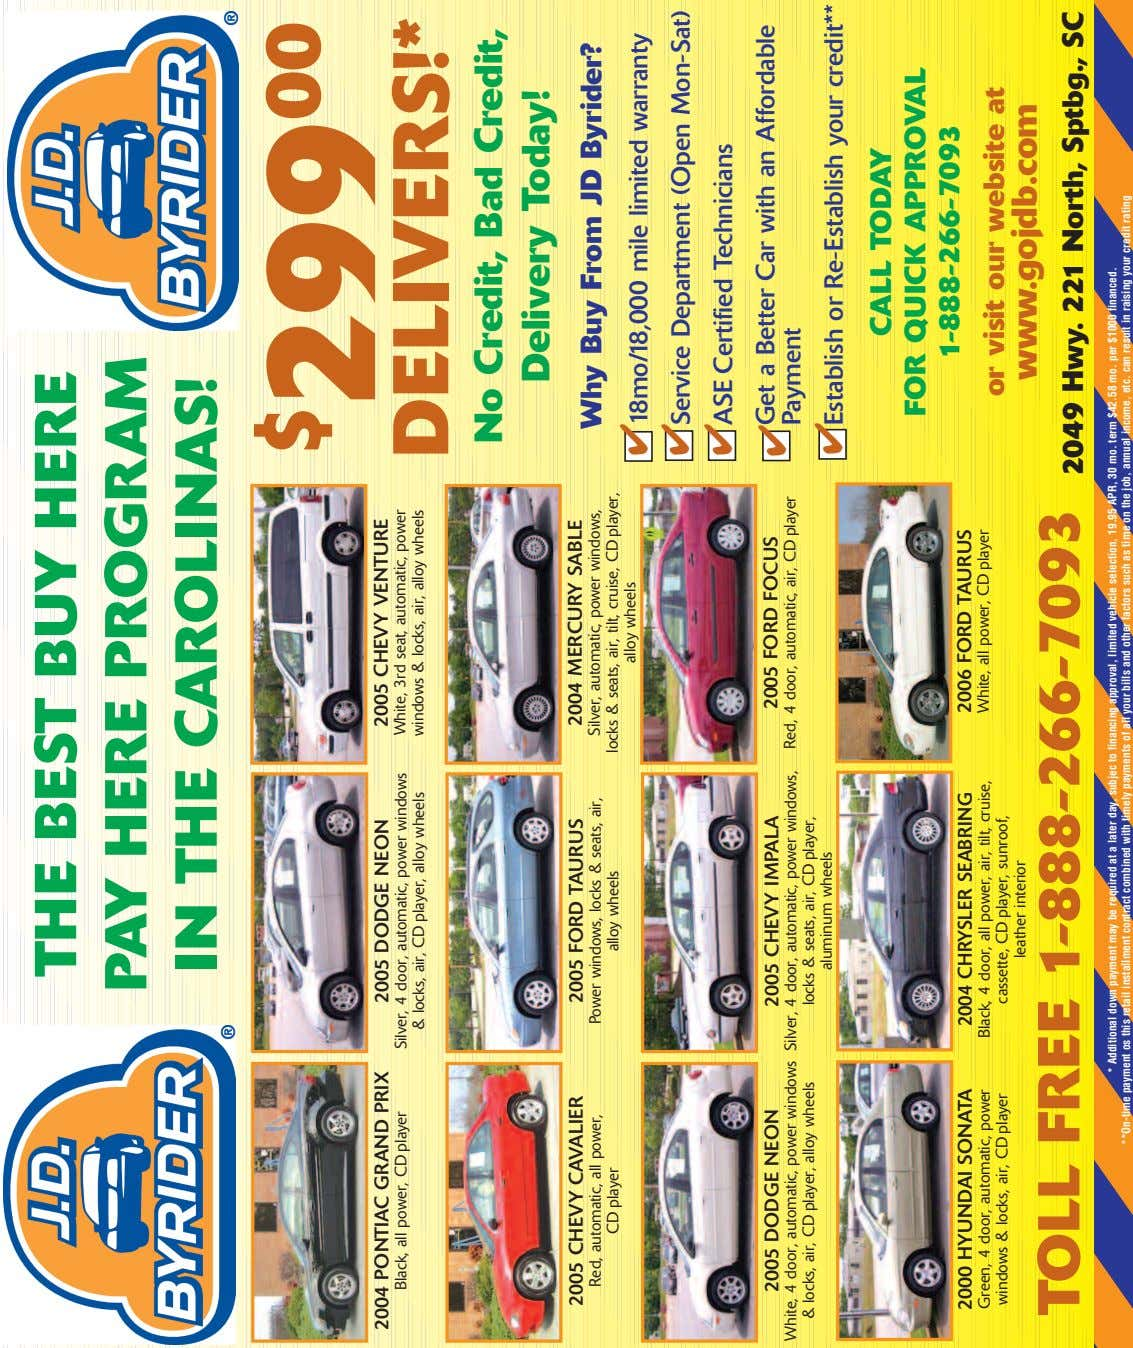 THE BEST BUY HERE PAY HERE PROGRAM IN THE CAROLINAS! 2004 PONTIAC GRAND PRIX 2005